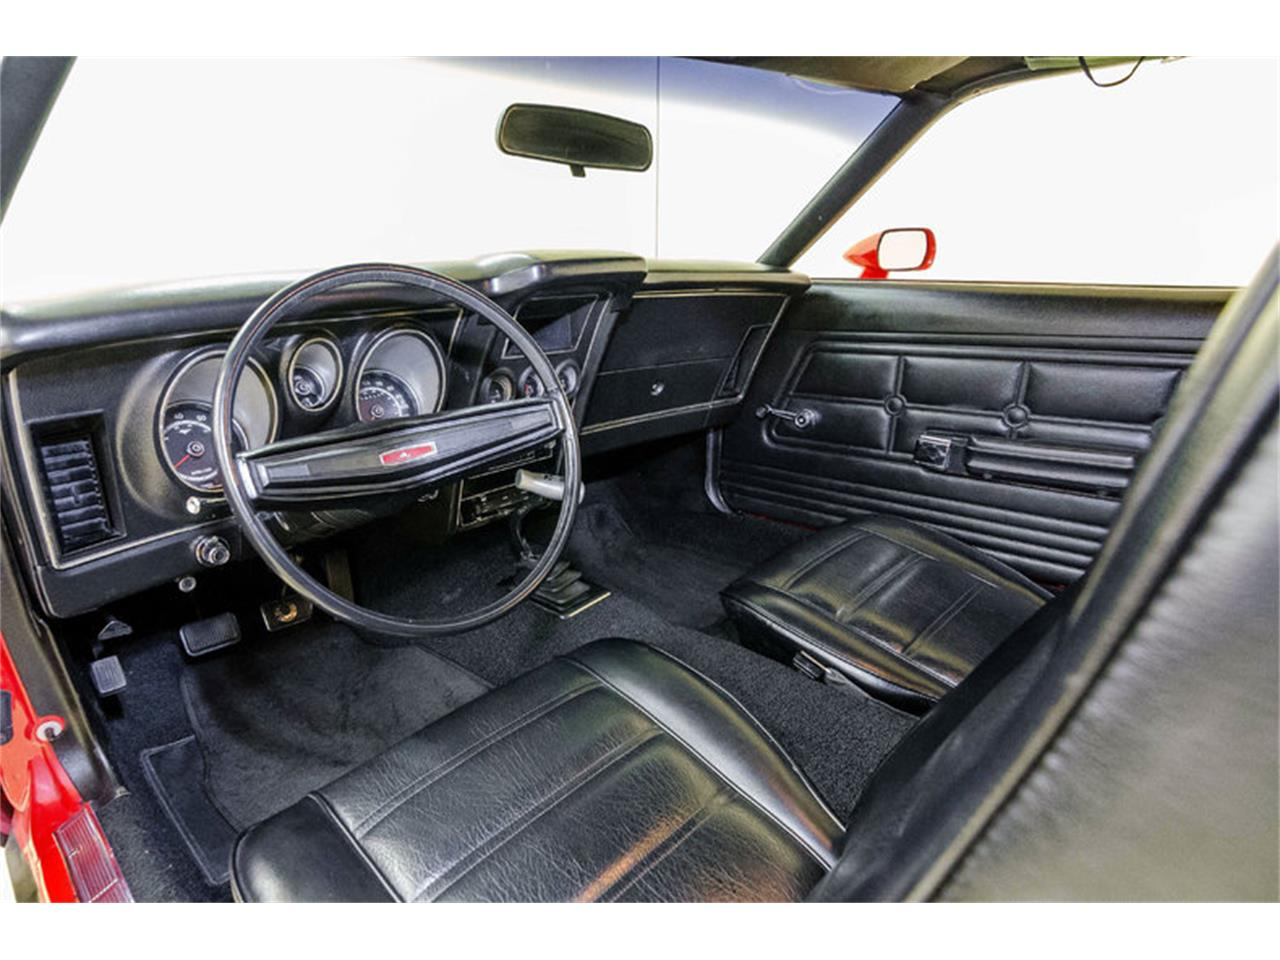 Large Picture of '71 Mustang Boss Offered by Autobarn Classic Cars - LWKK